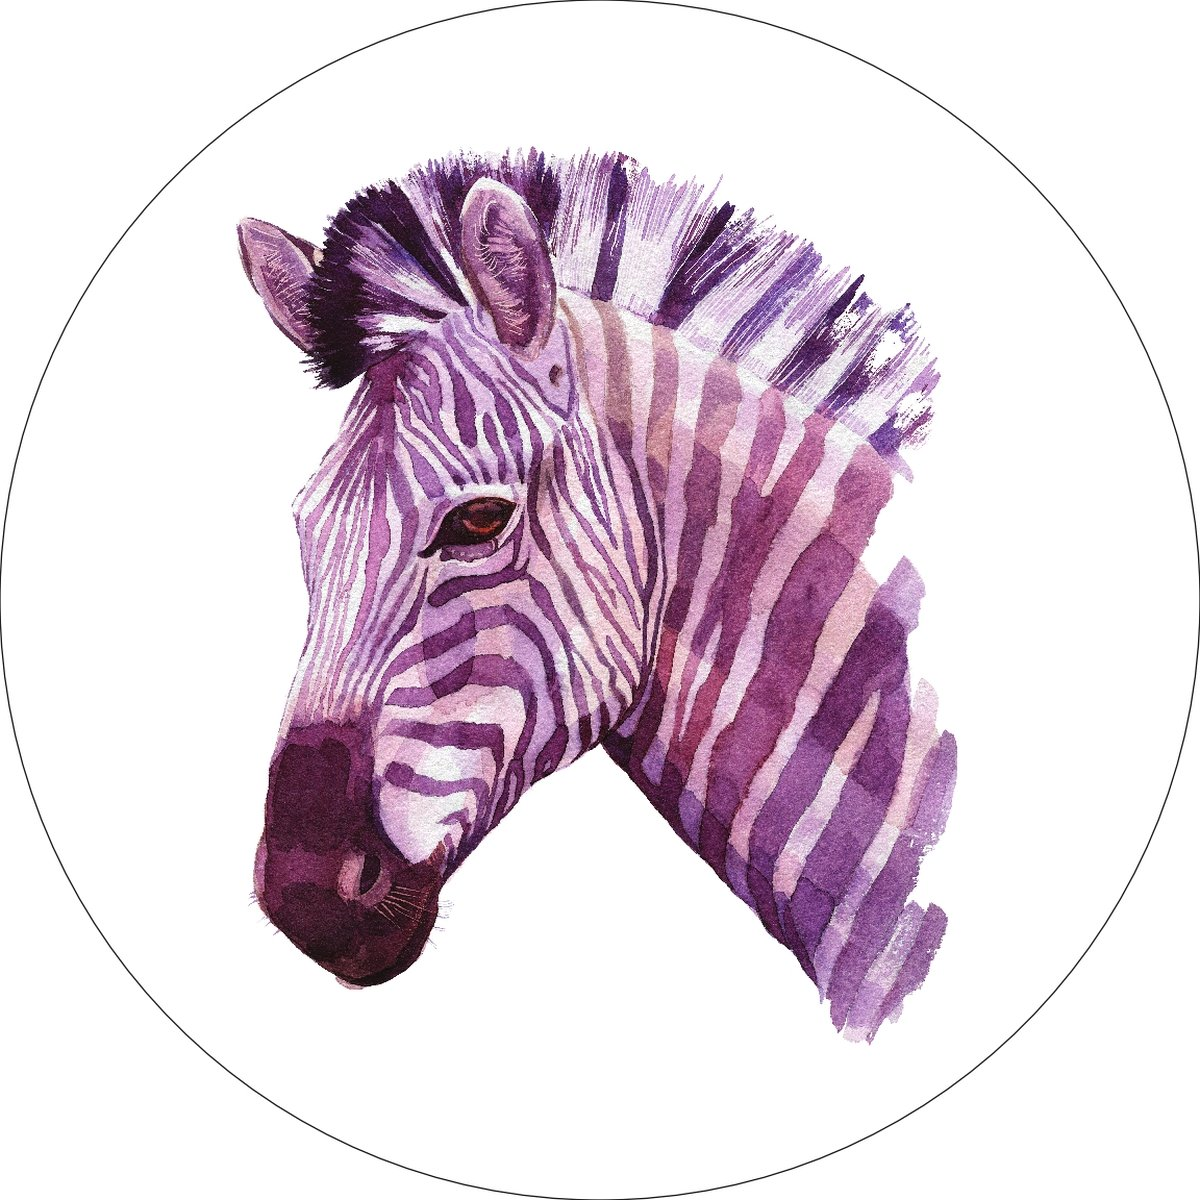 Zebra Home Wall Shelf Decor Animal Decorations Watercolor Round Sign - 12 Inch, Plastic